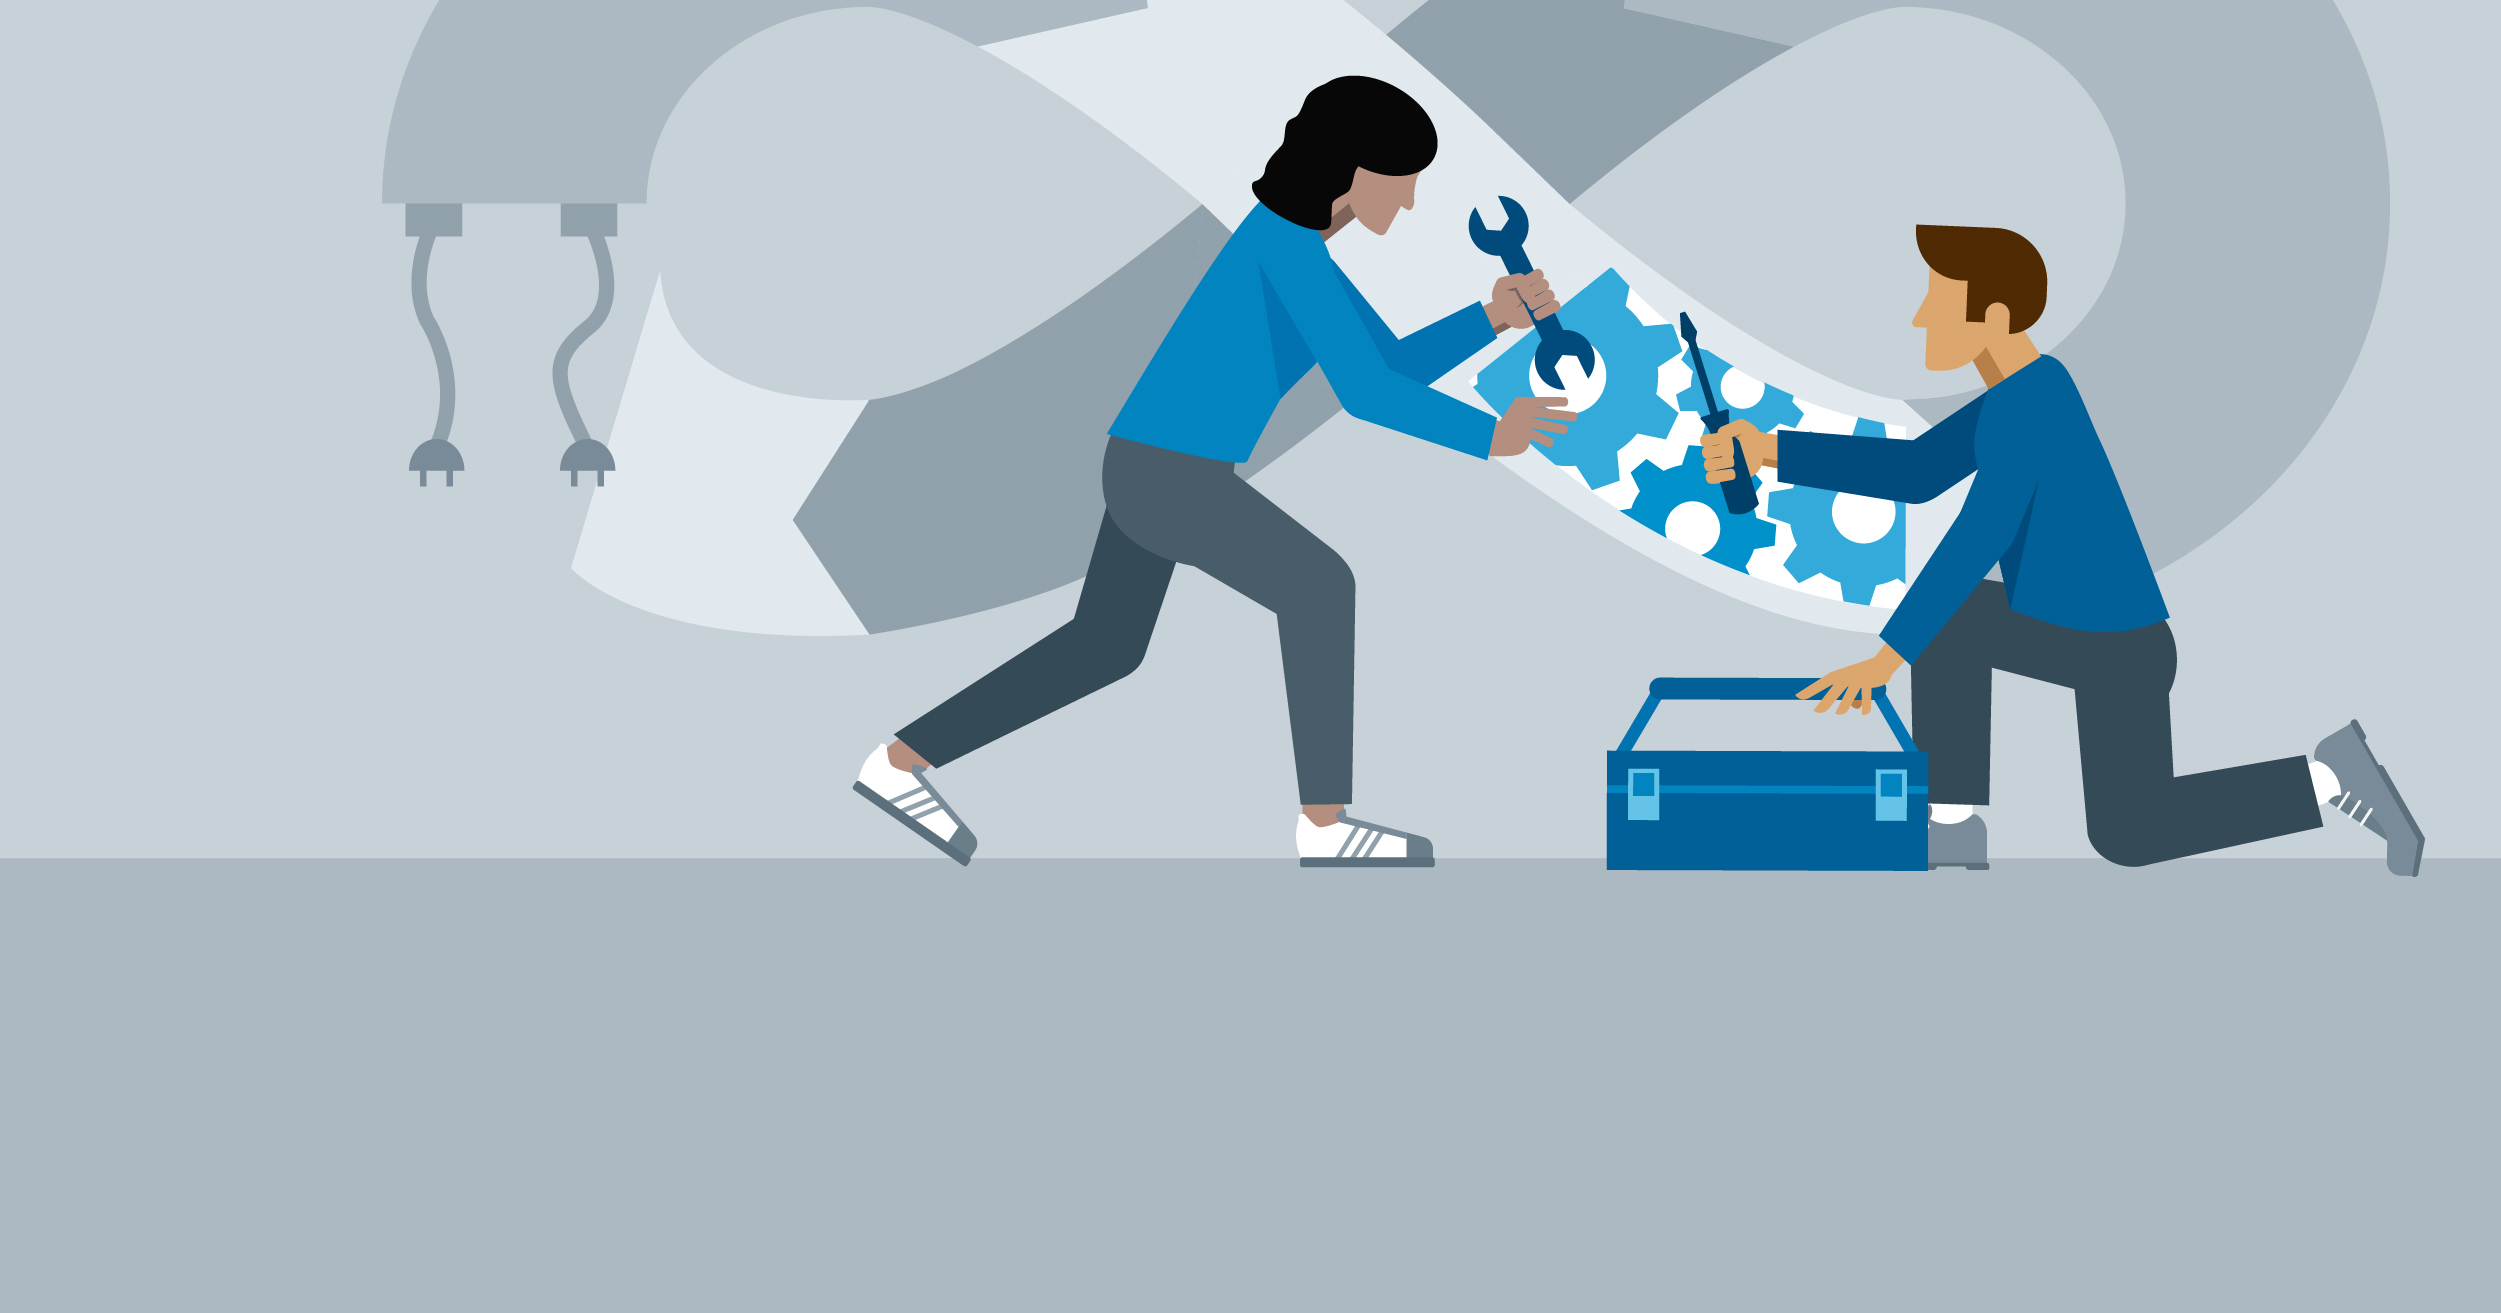 hero image for Learning Path: Become a DevOps Engineer